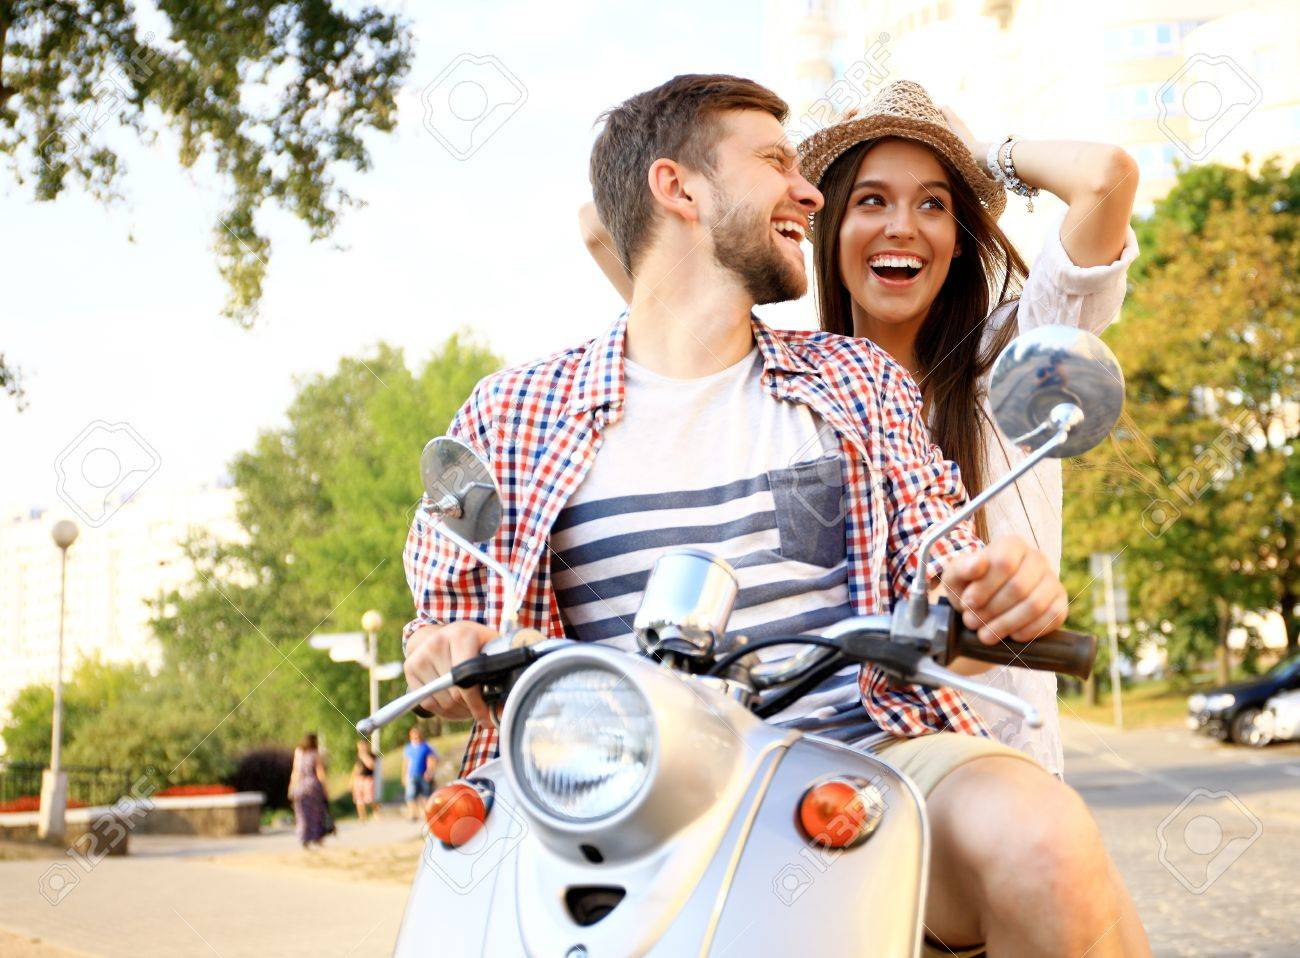 Couple in love riding a motorbike - 53536911